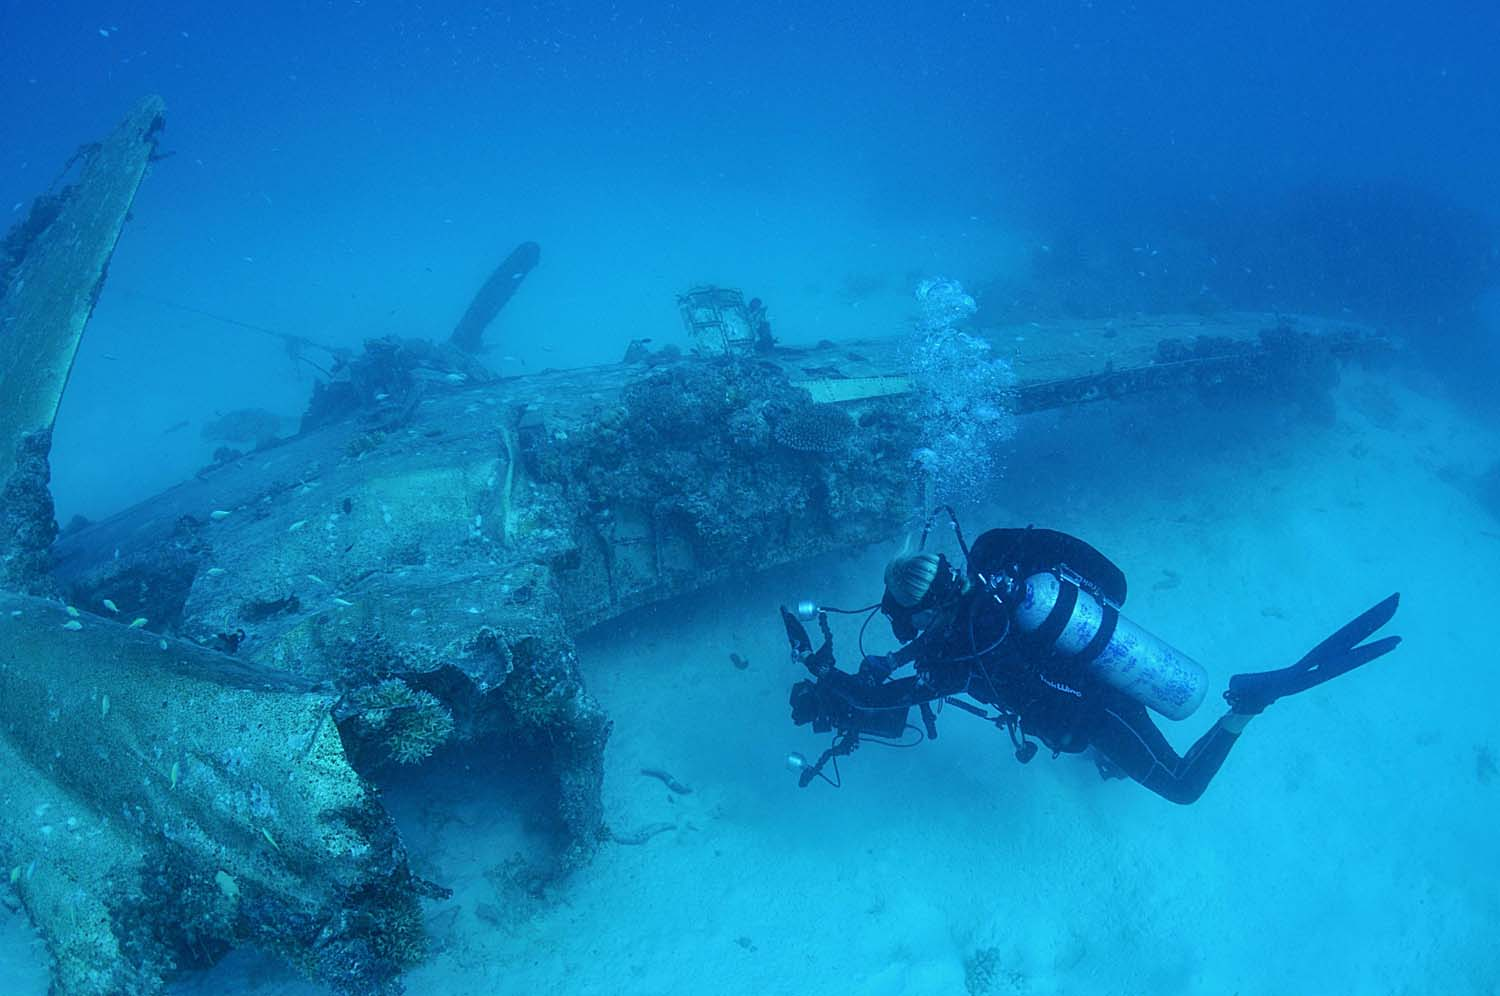 Divers hover around the wreck of a WW2 legend